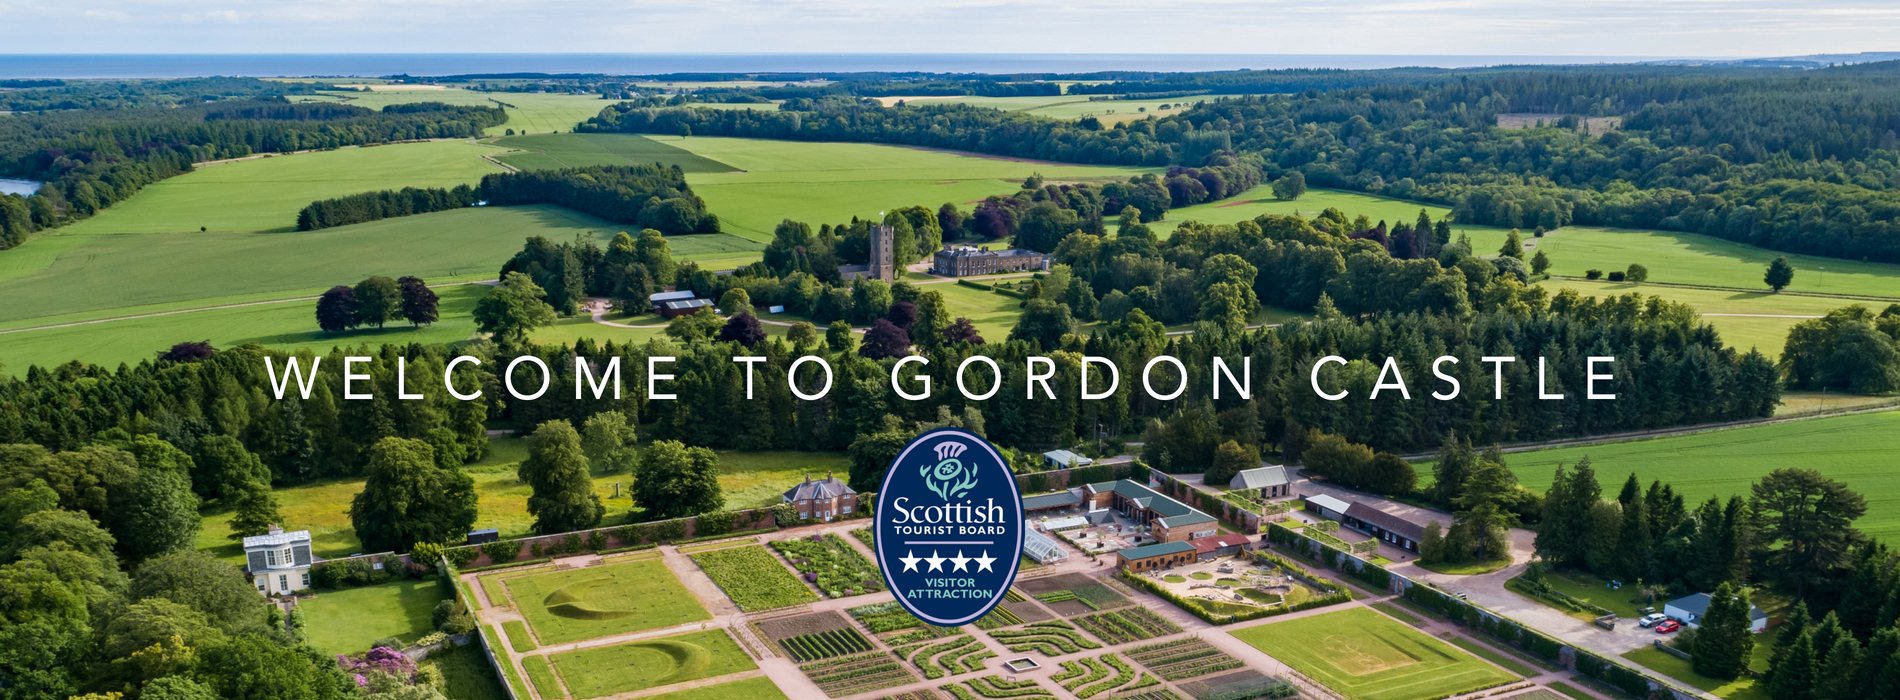 Gordon Castle Walled Garden 4 Star Visitor Attraction